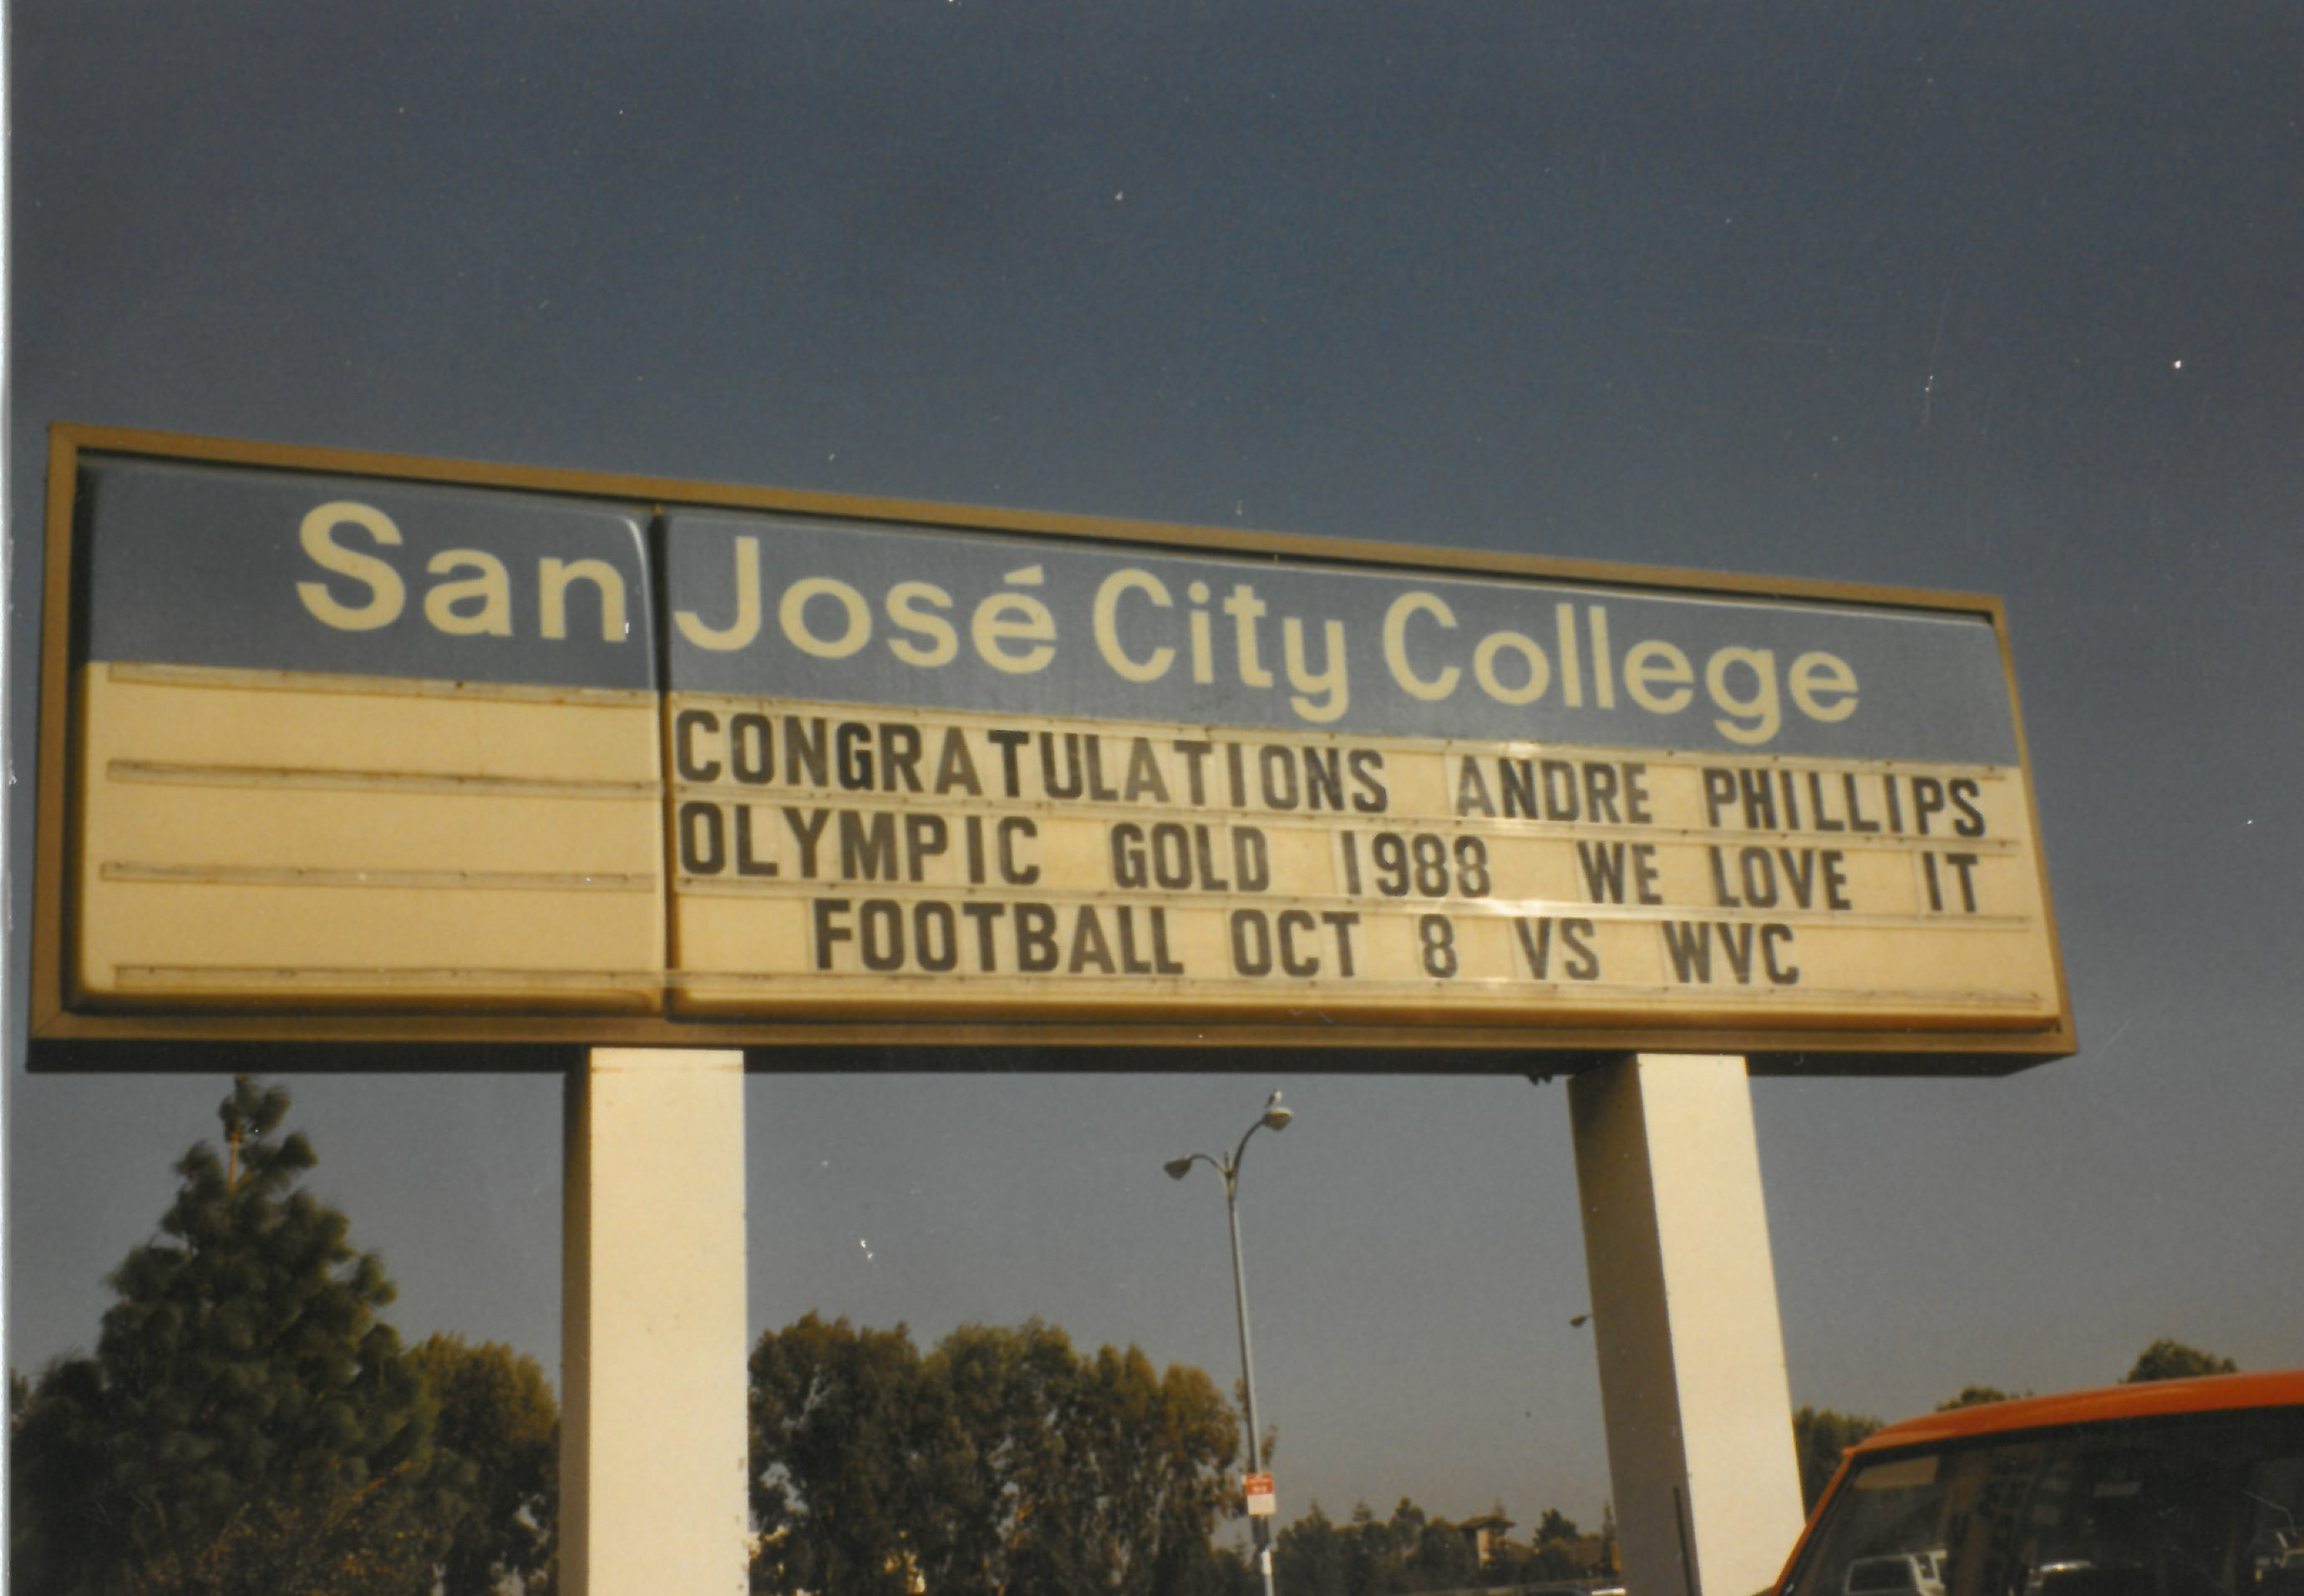 SJCC sign: congratulations André Phillips Olympic Gold 1988 - We love it.